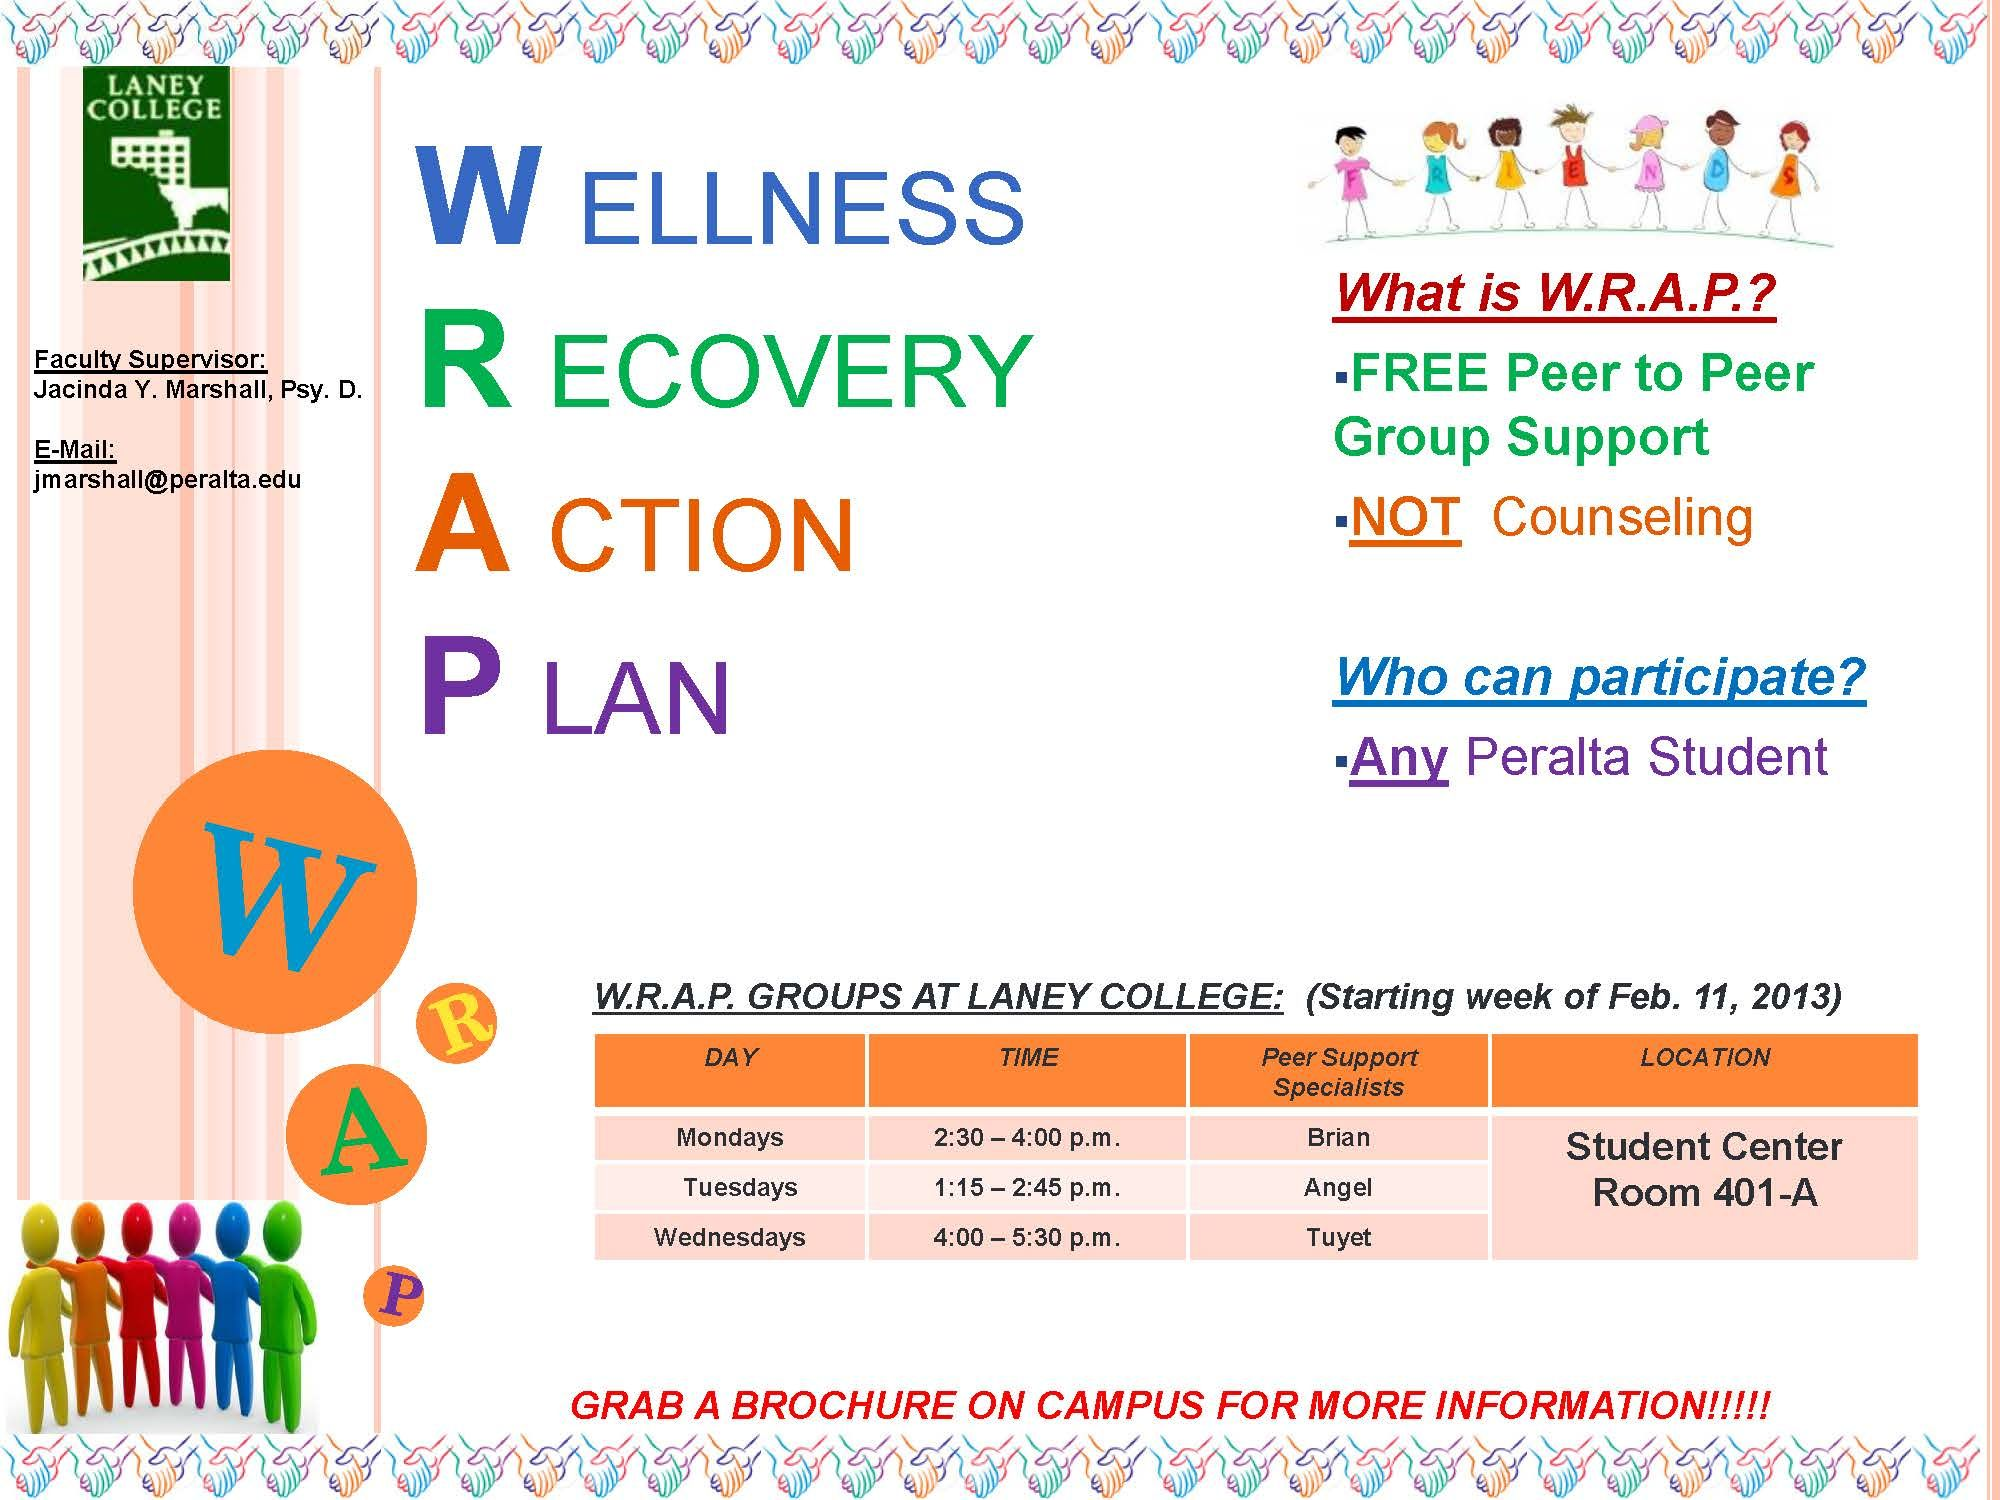 Wellness Recovery Action Plan Worksheet Sharebrowse – Wellness Recovery Action Plan Worksheets